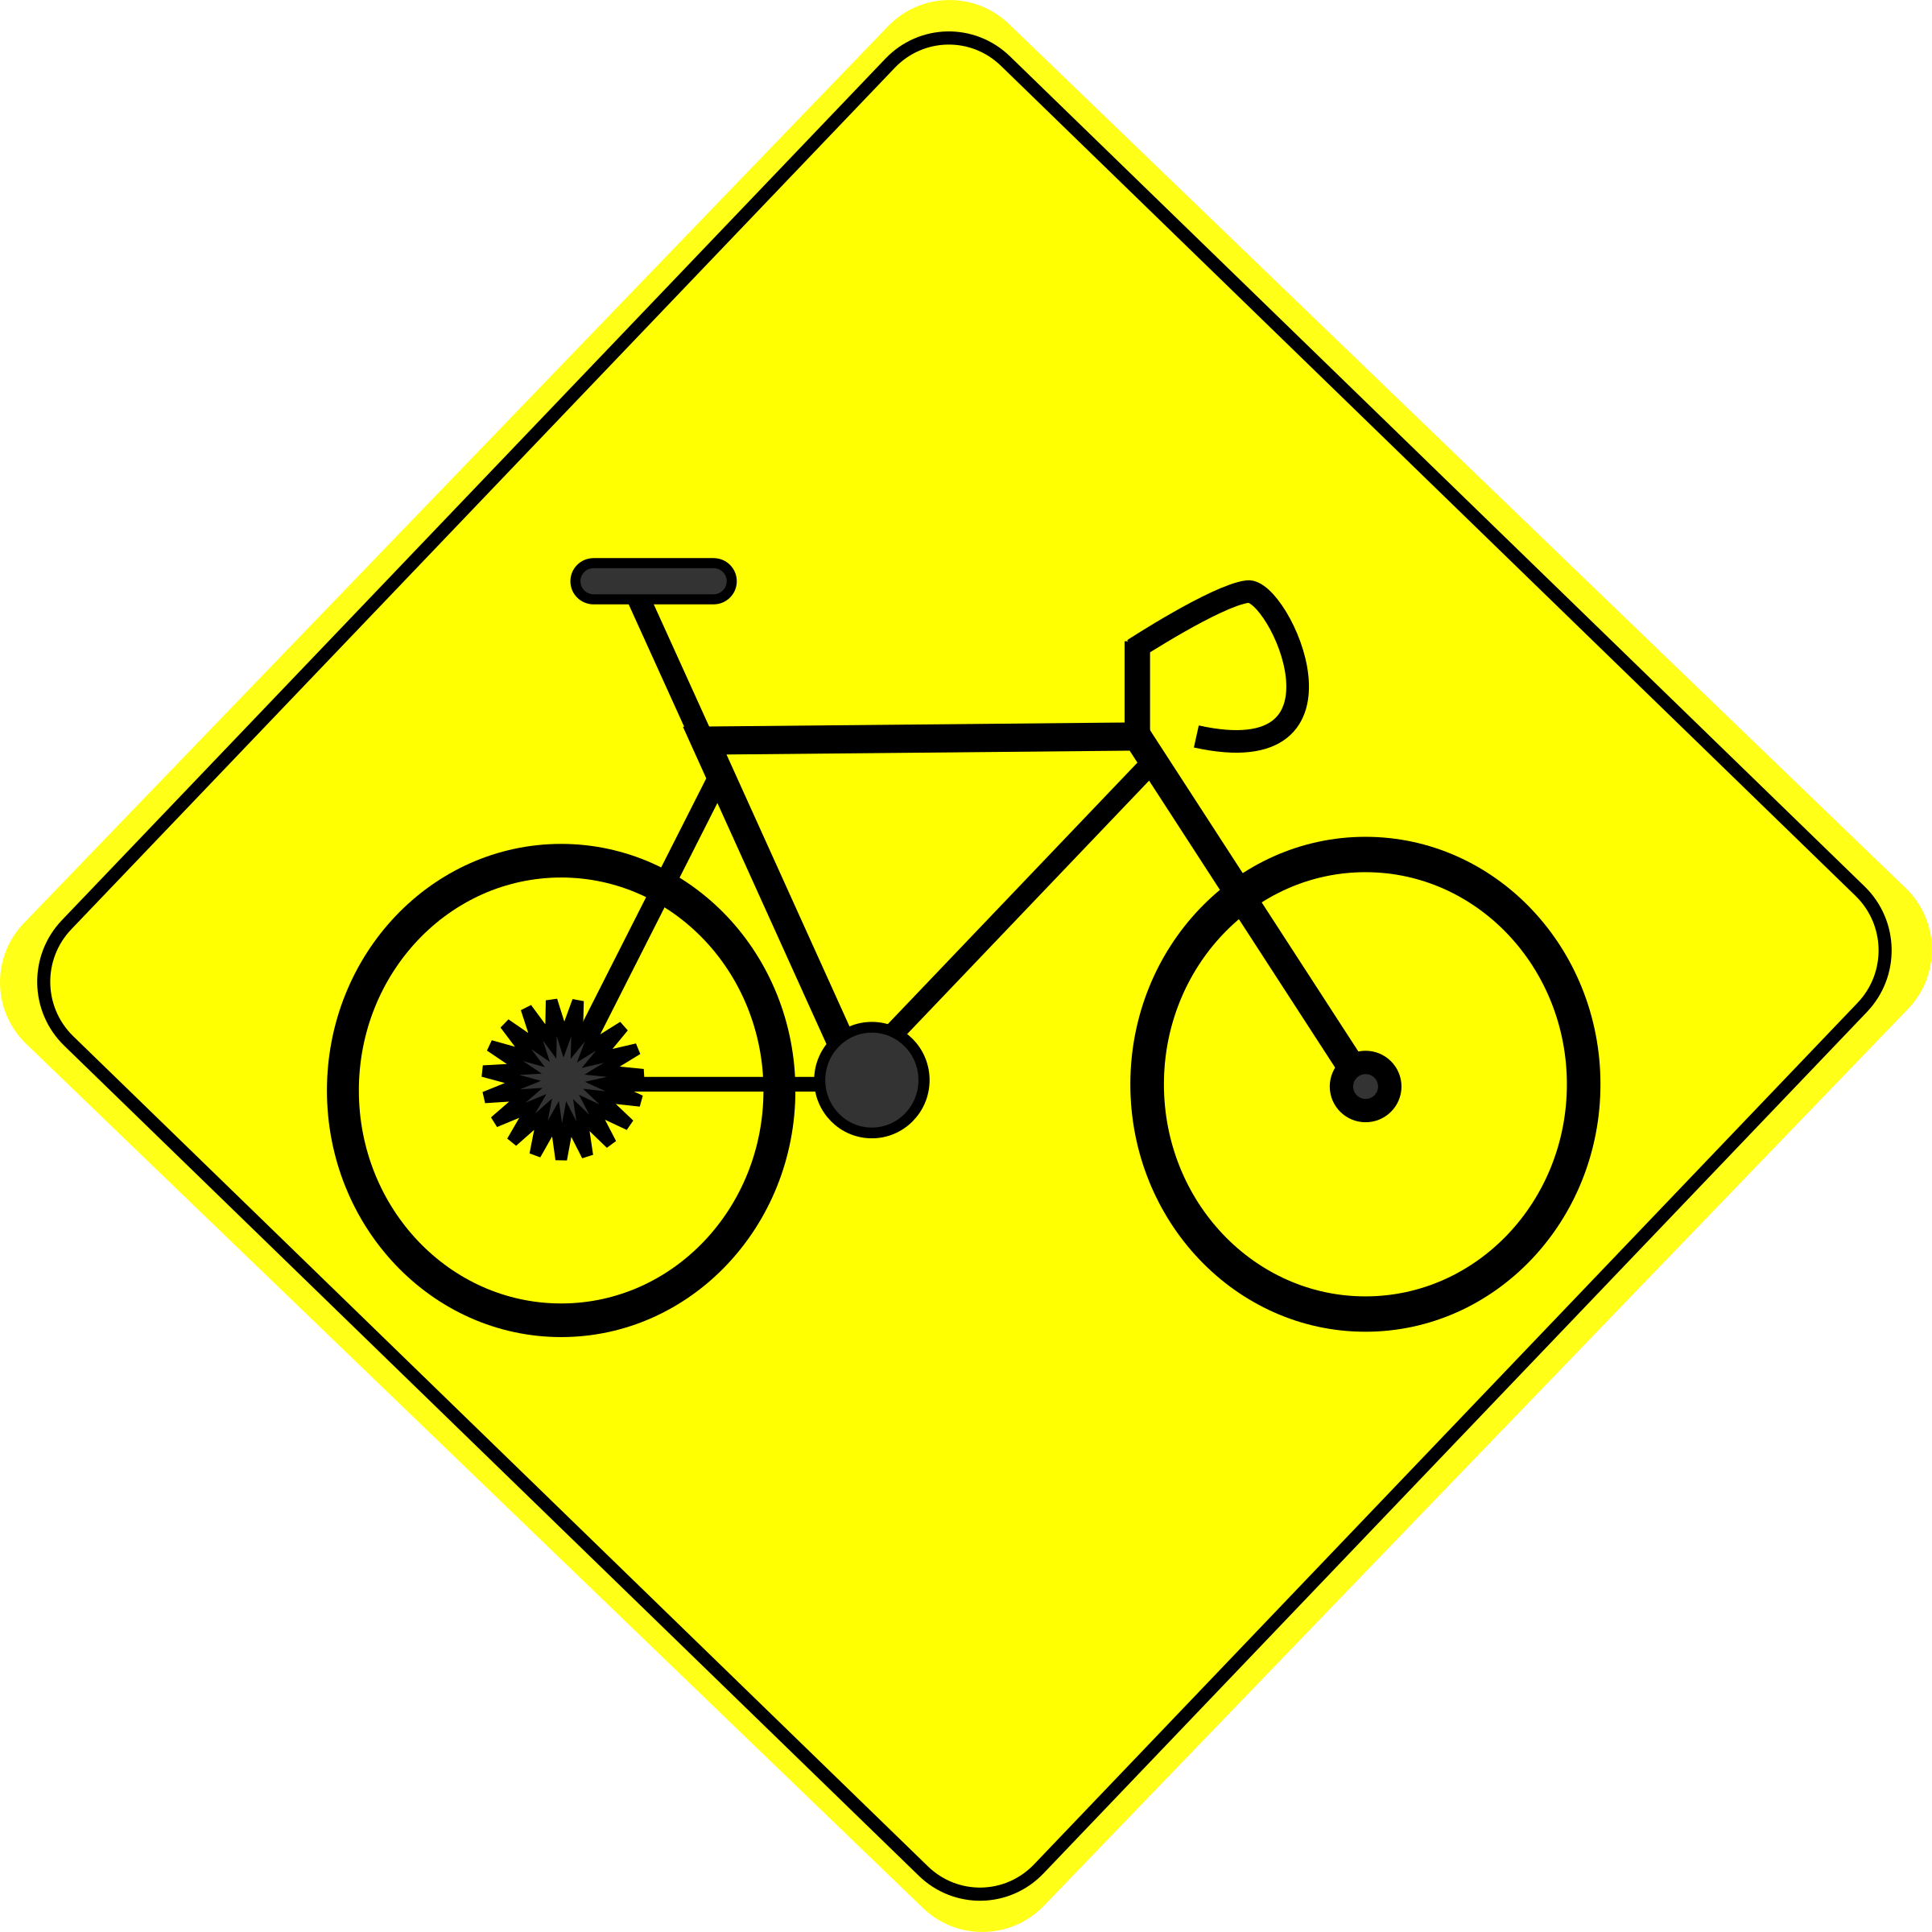 Bike crossing caution sign. Clipart road outline